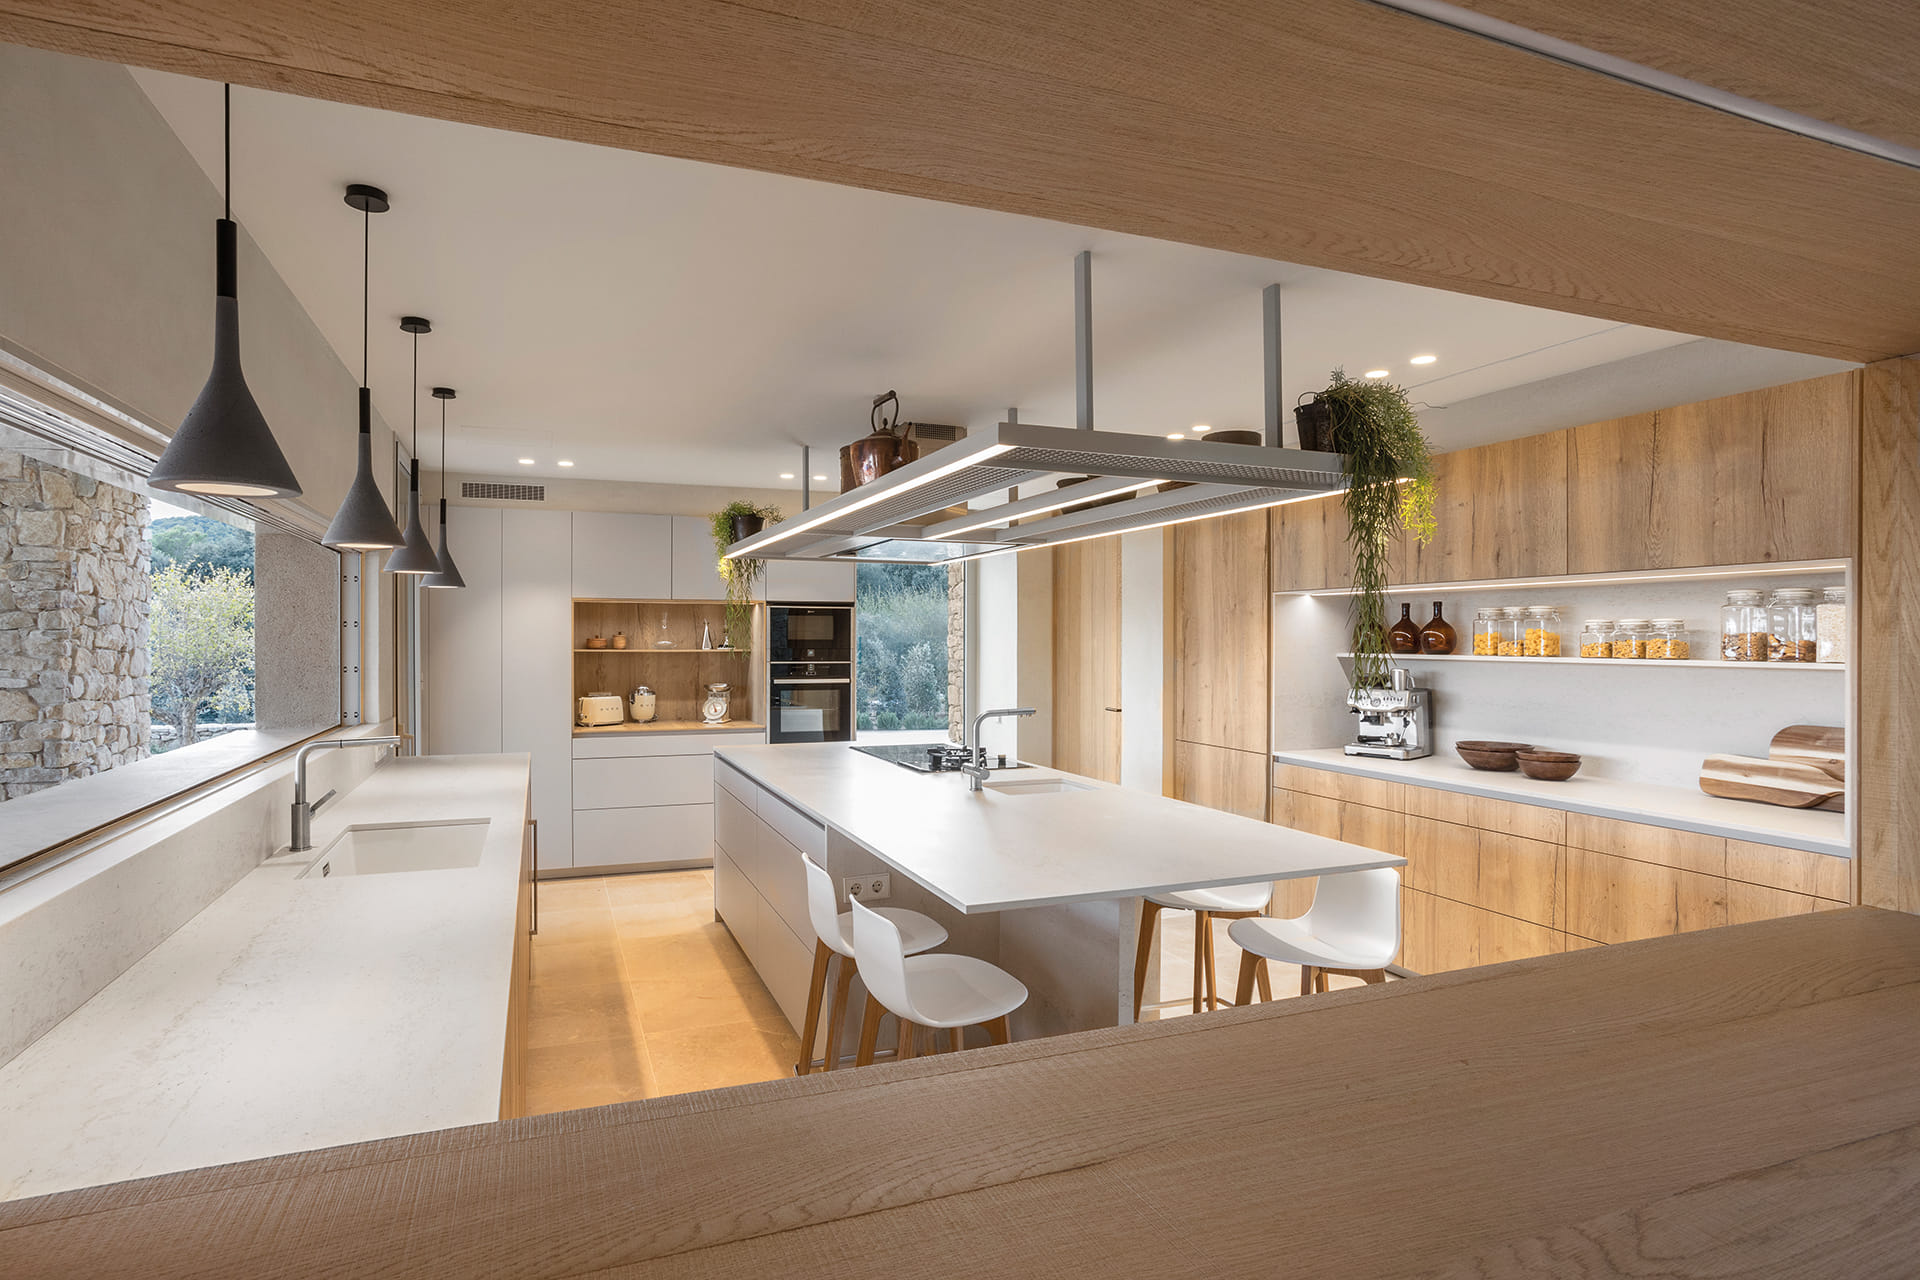 Santos kitchen with island and wooden finish